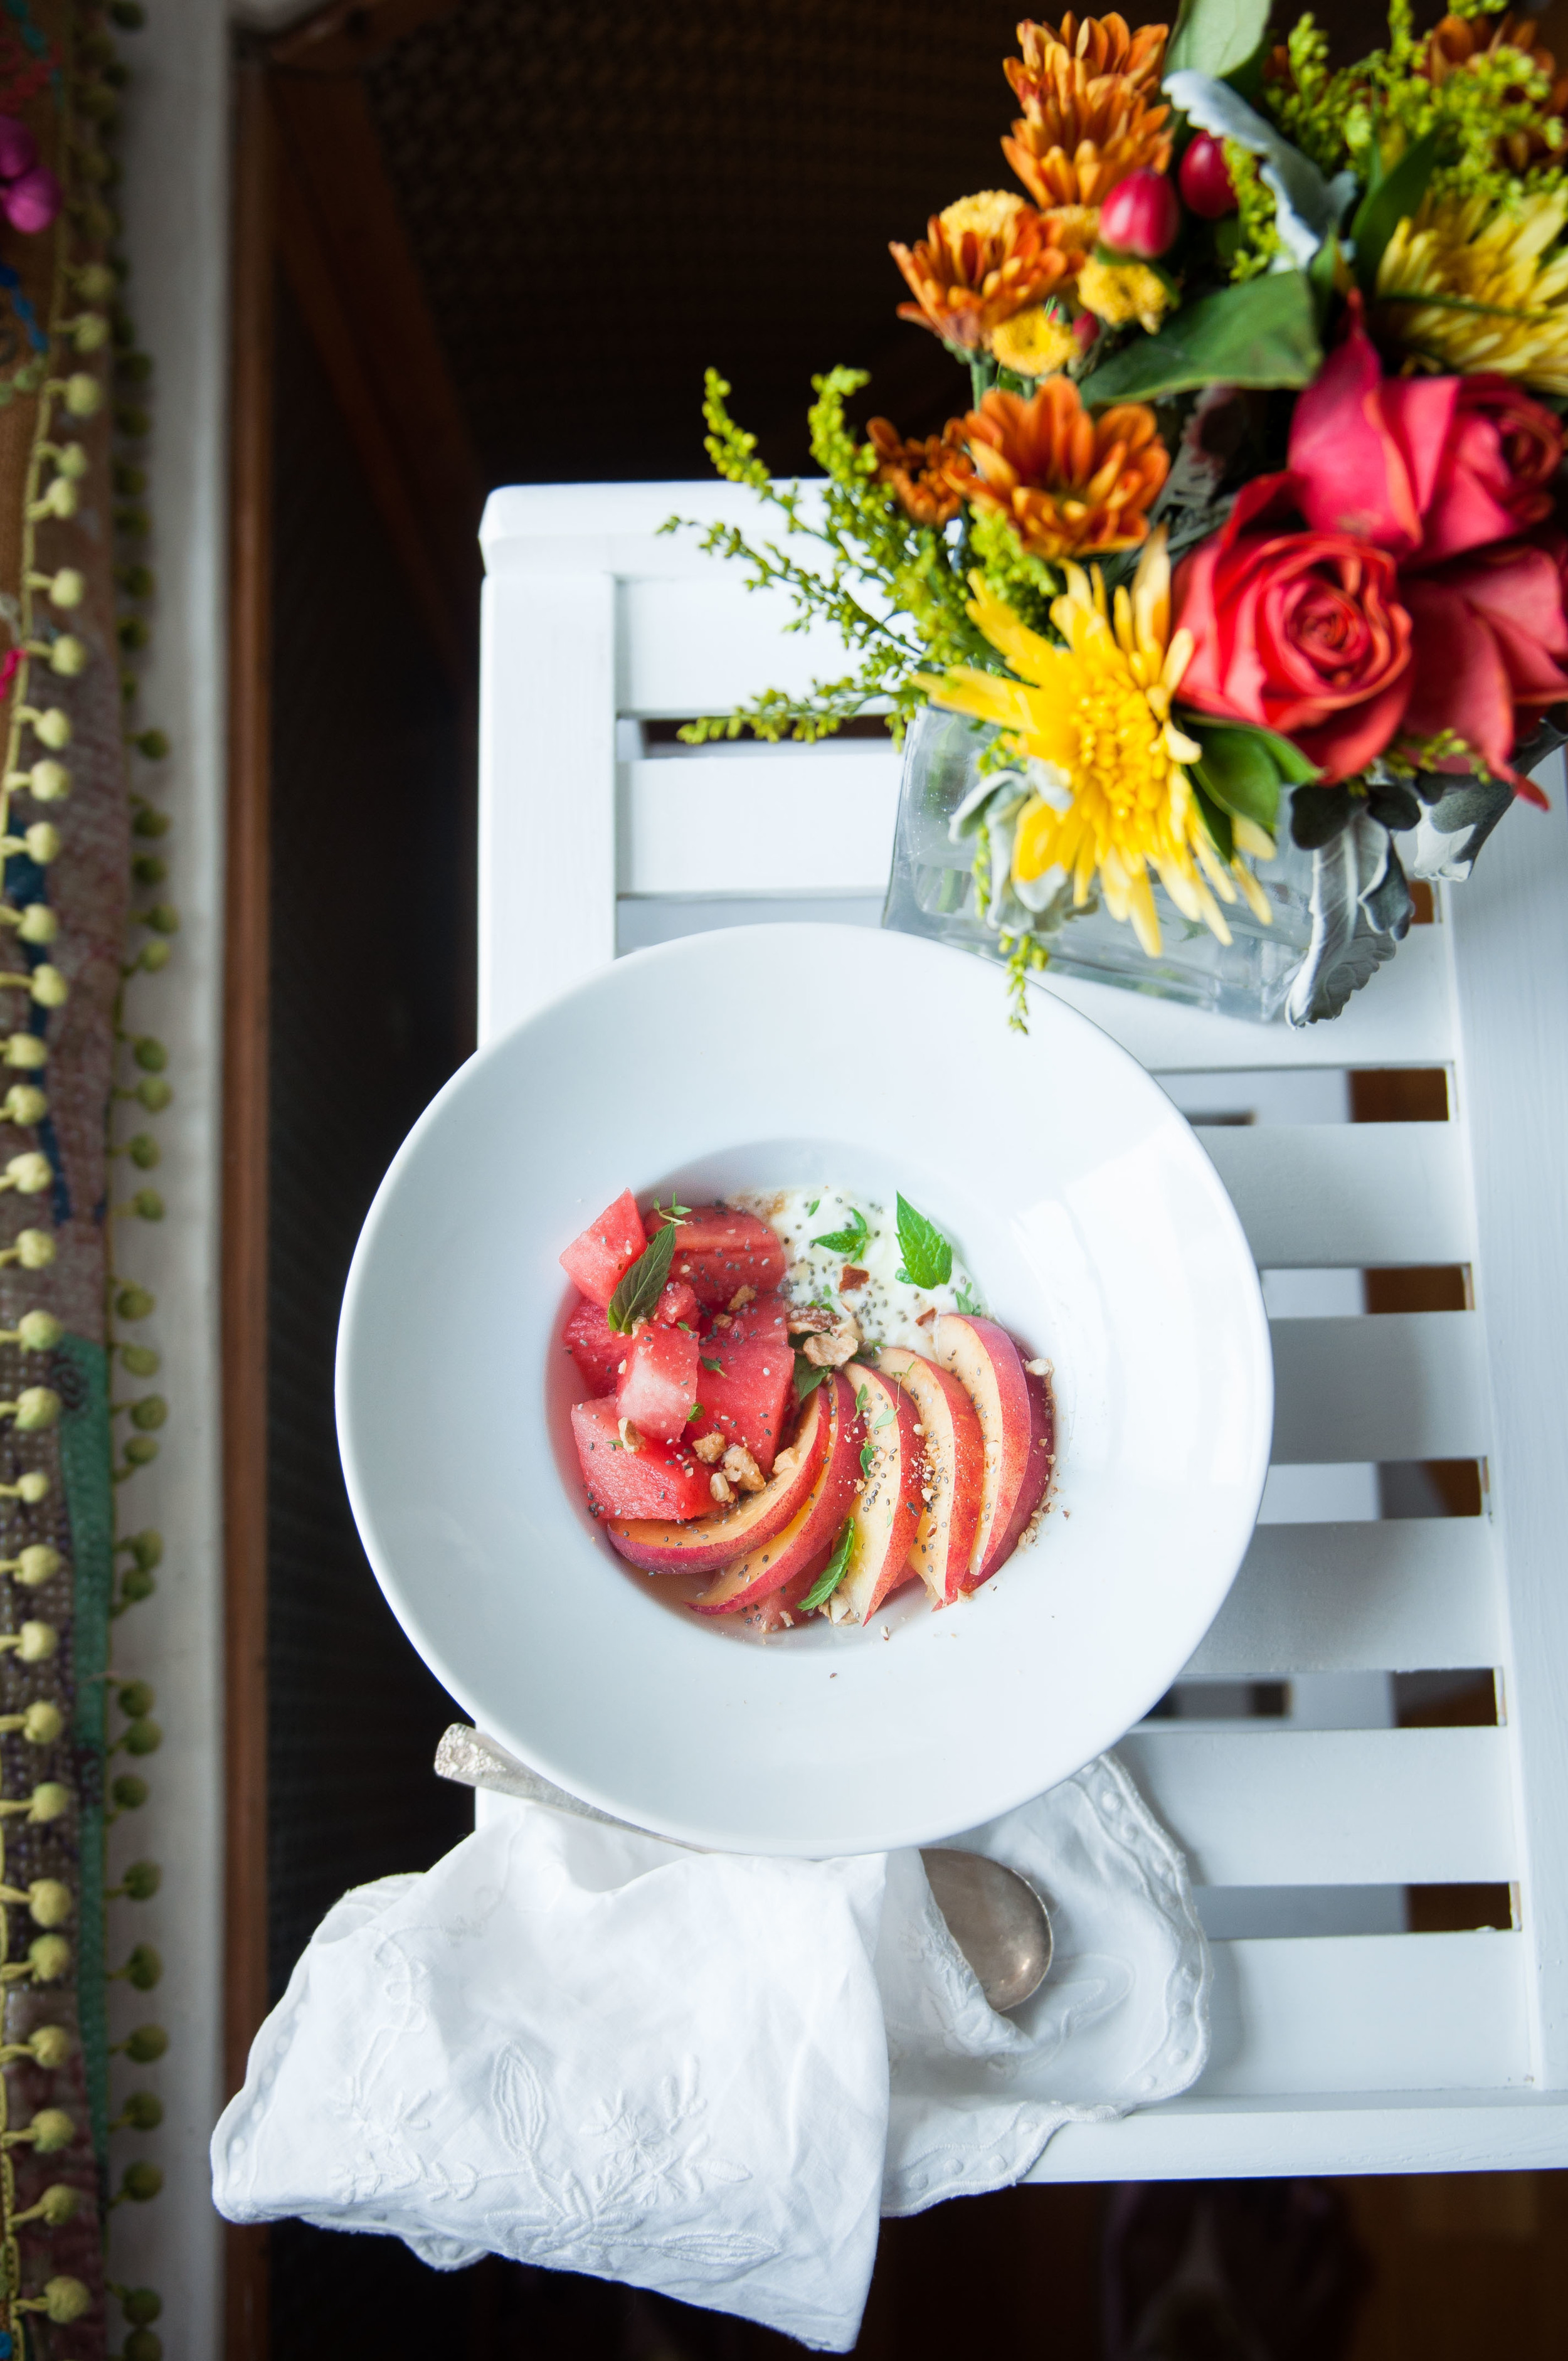 Summer Chia and Fruit Breakfasts